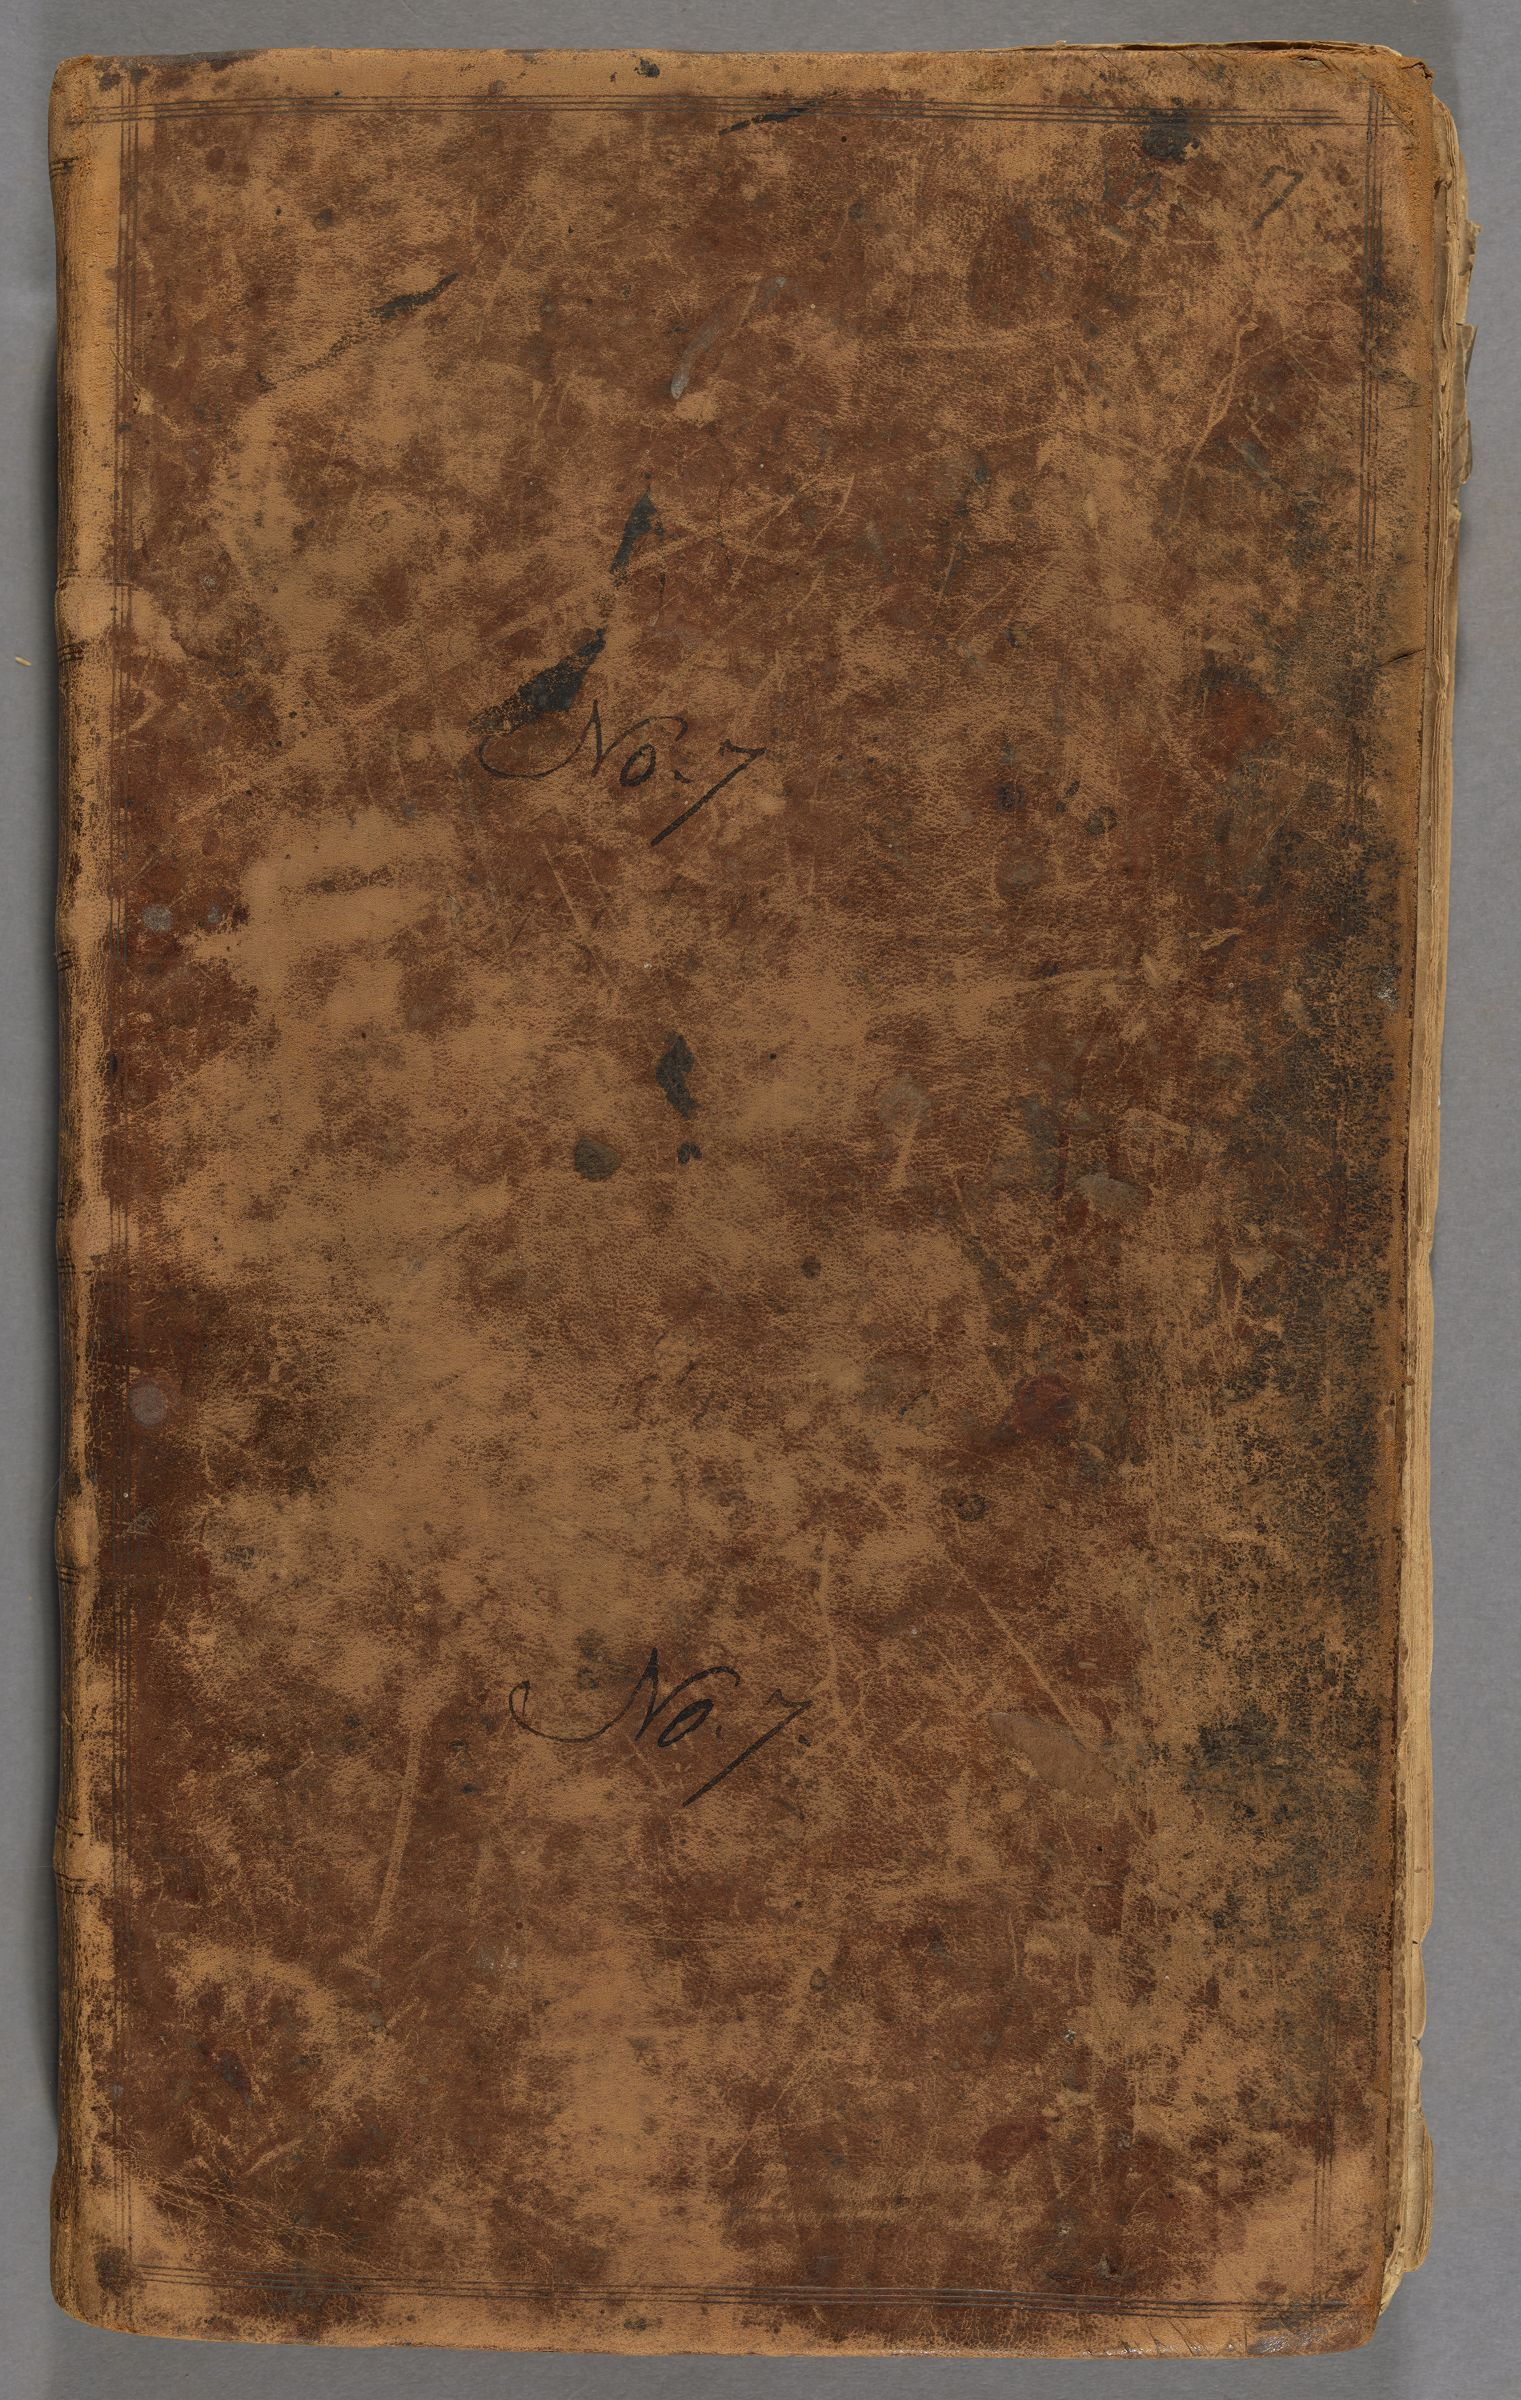 Account book of Job Godfrey, 1787-1809 (inclusive)